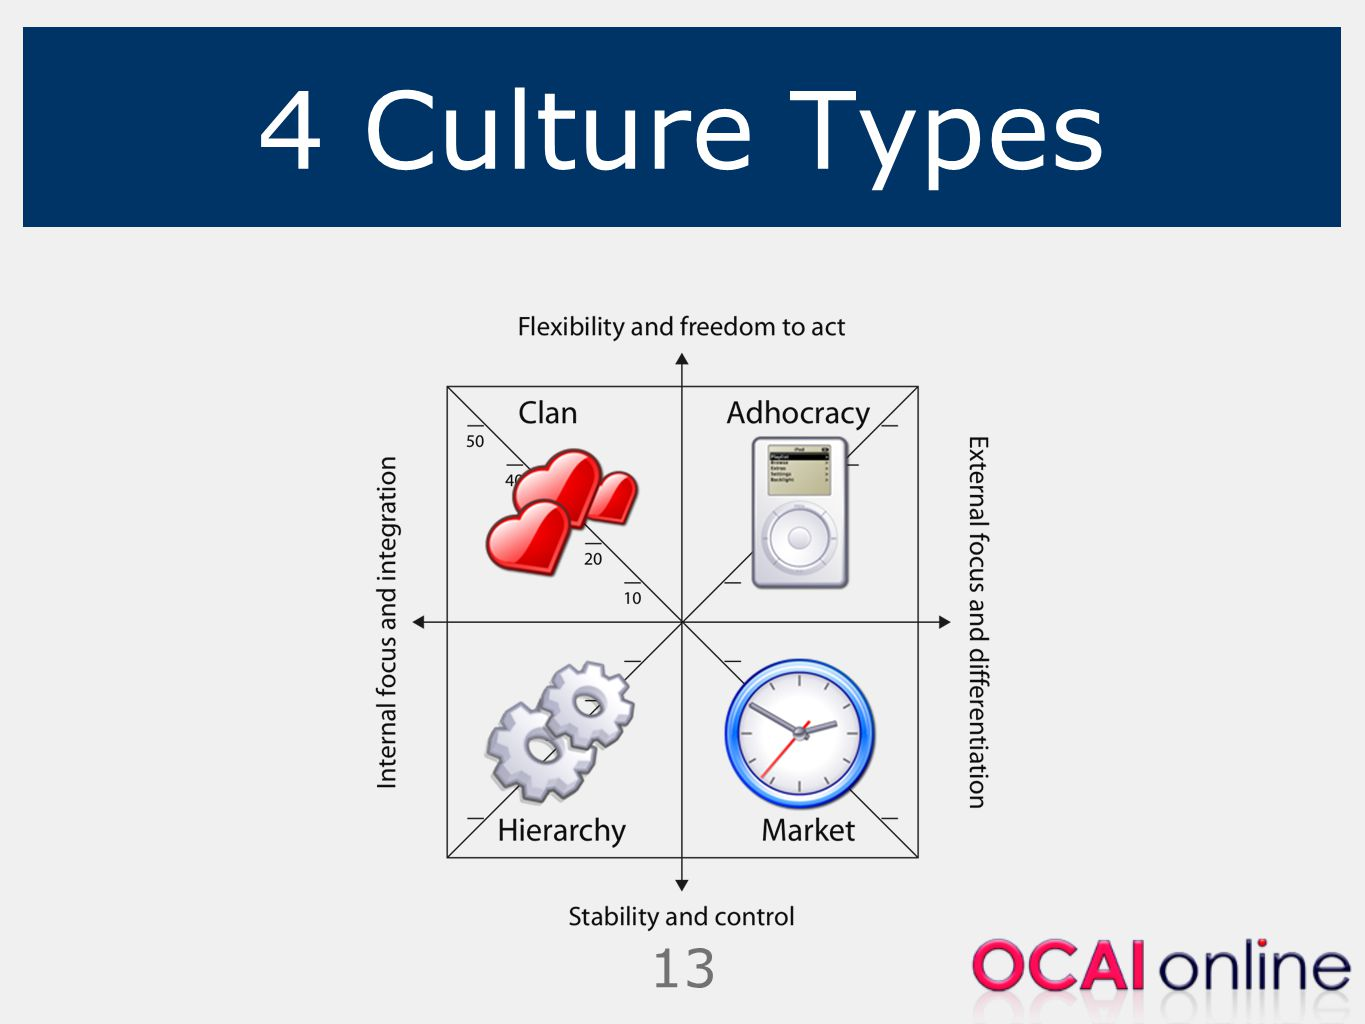 4 Culture Types